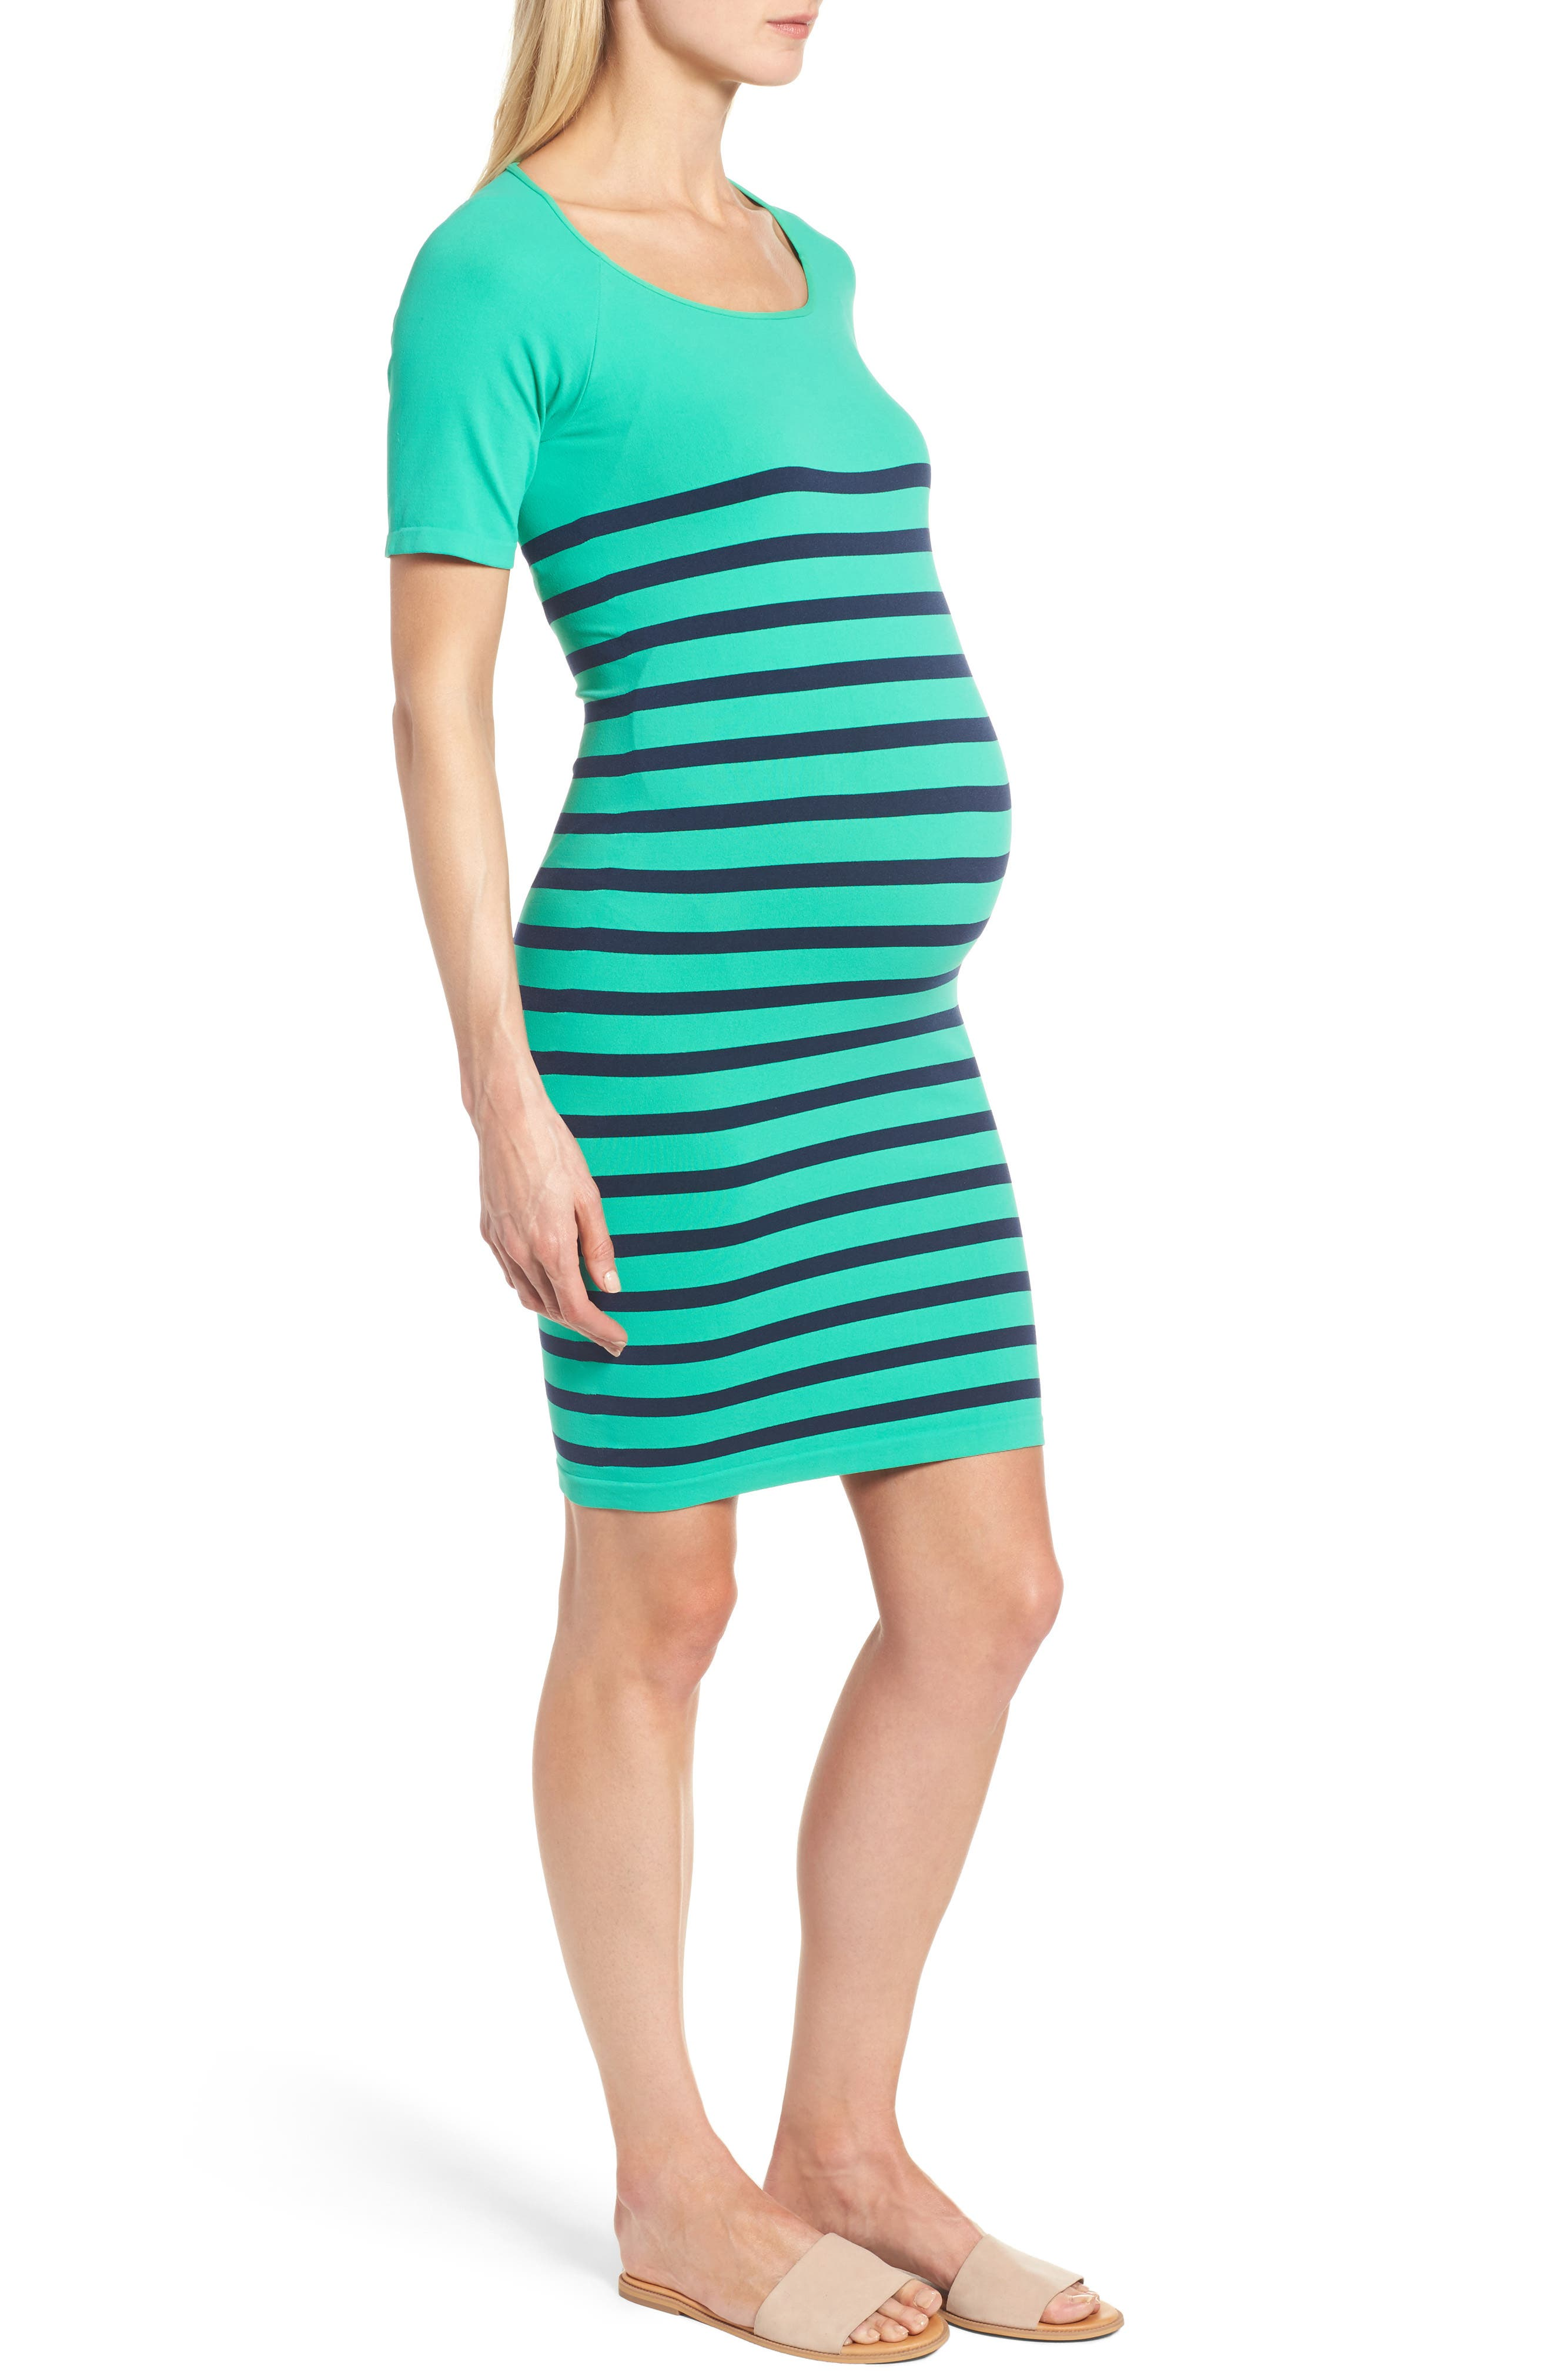 Nautical Maternity Dress,                             Alternate thumbnail 3, color,                             300